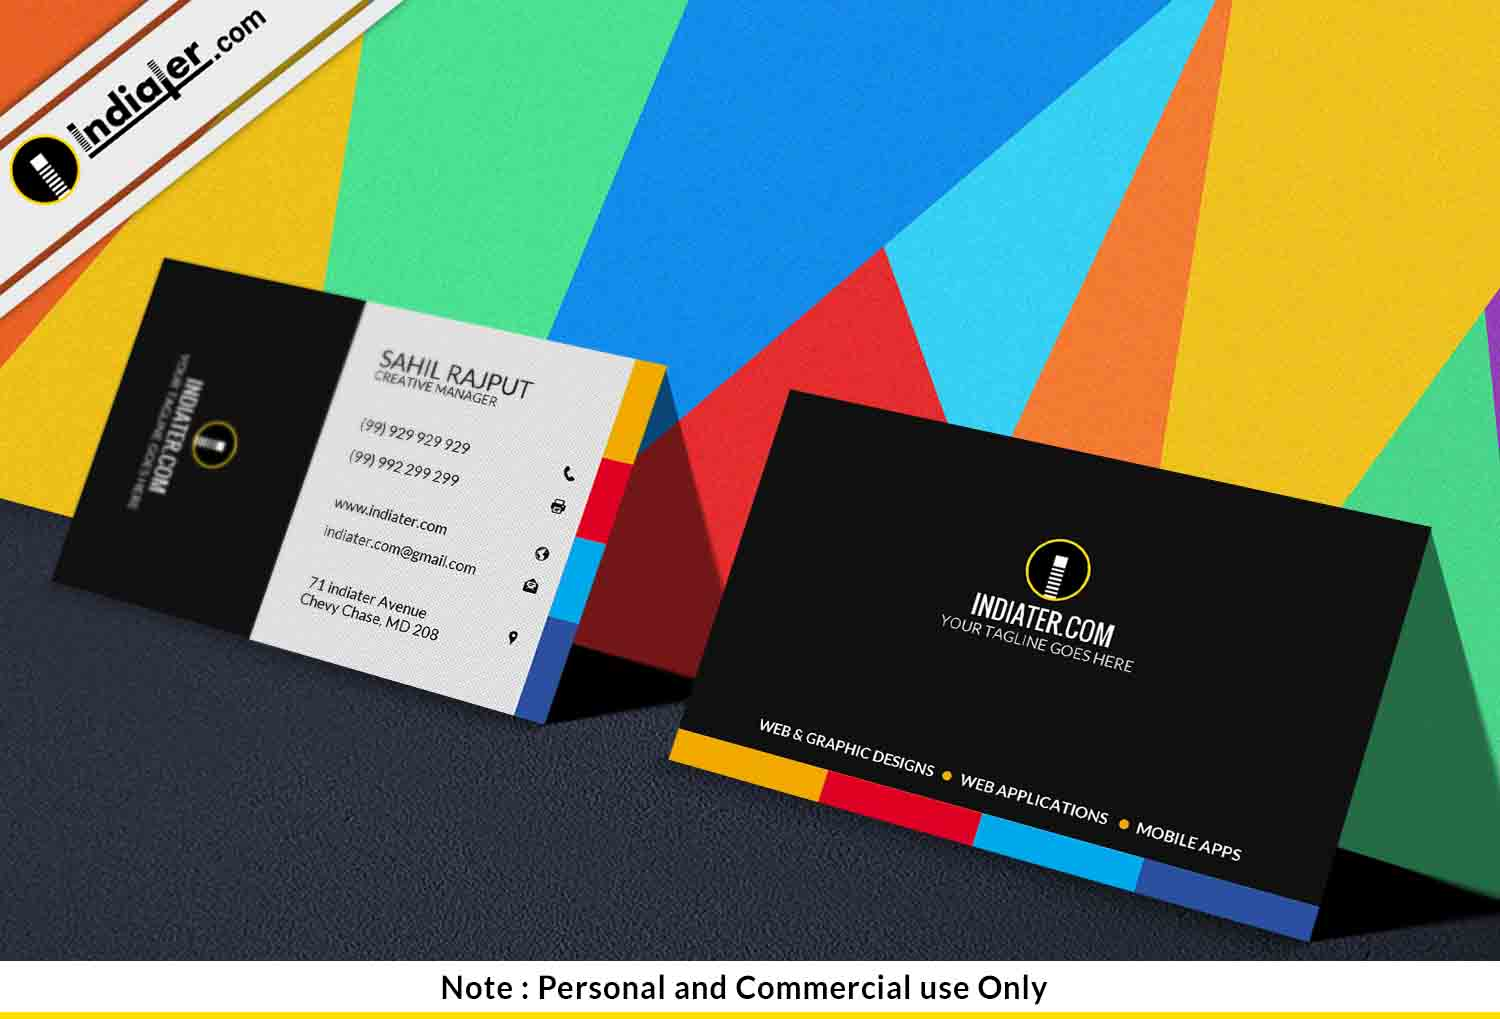 business card presentation template psd - free creative marketing business card psd template indiater